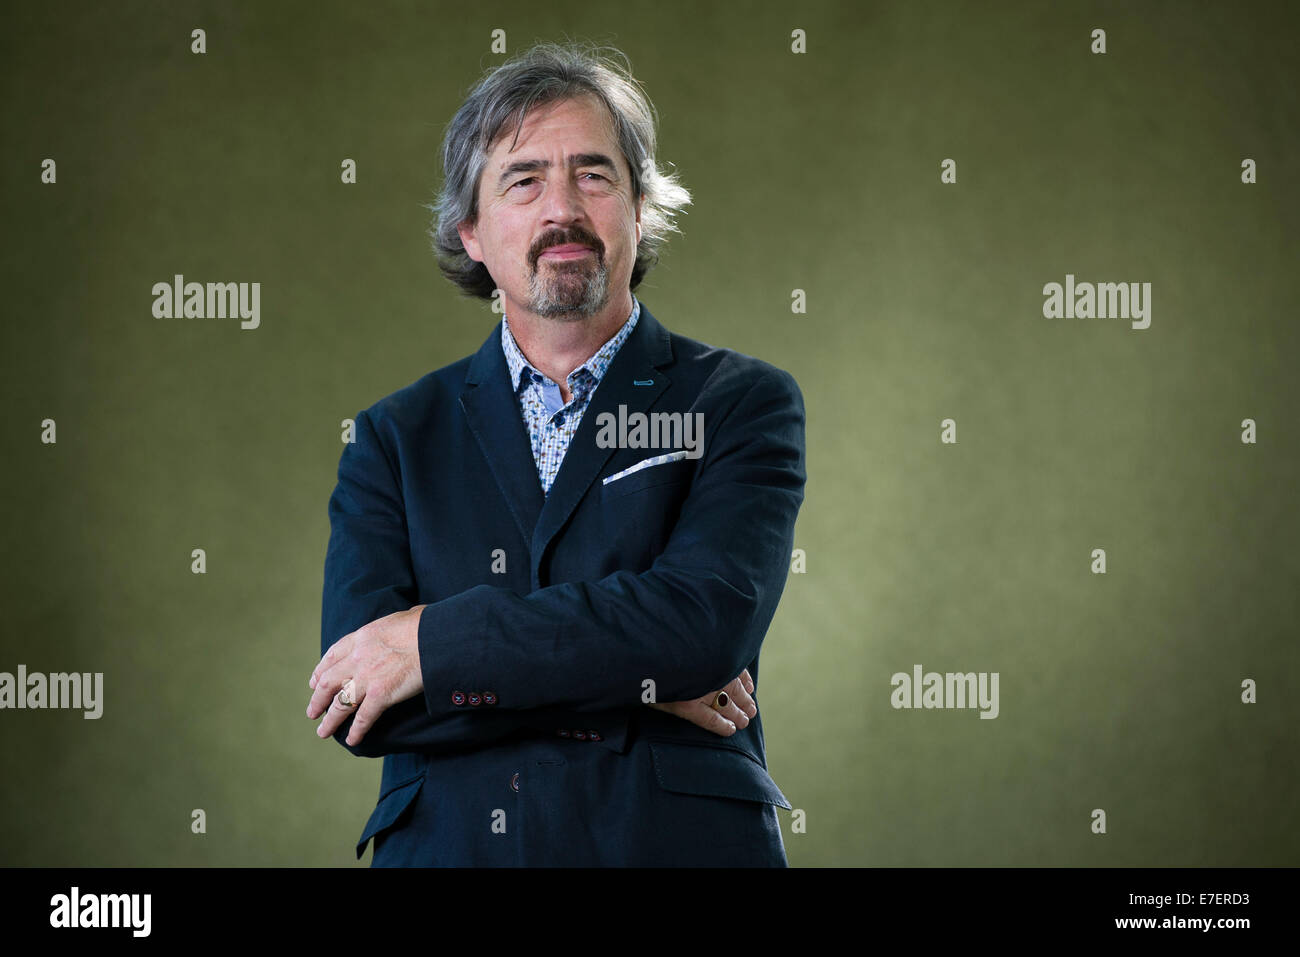 Irish playwright, novelist and poet Sebastian Barry appears at the Edinburgh International Book Festival. - Stock Image